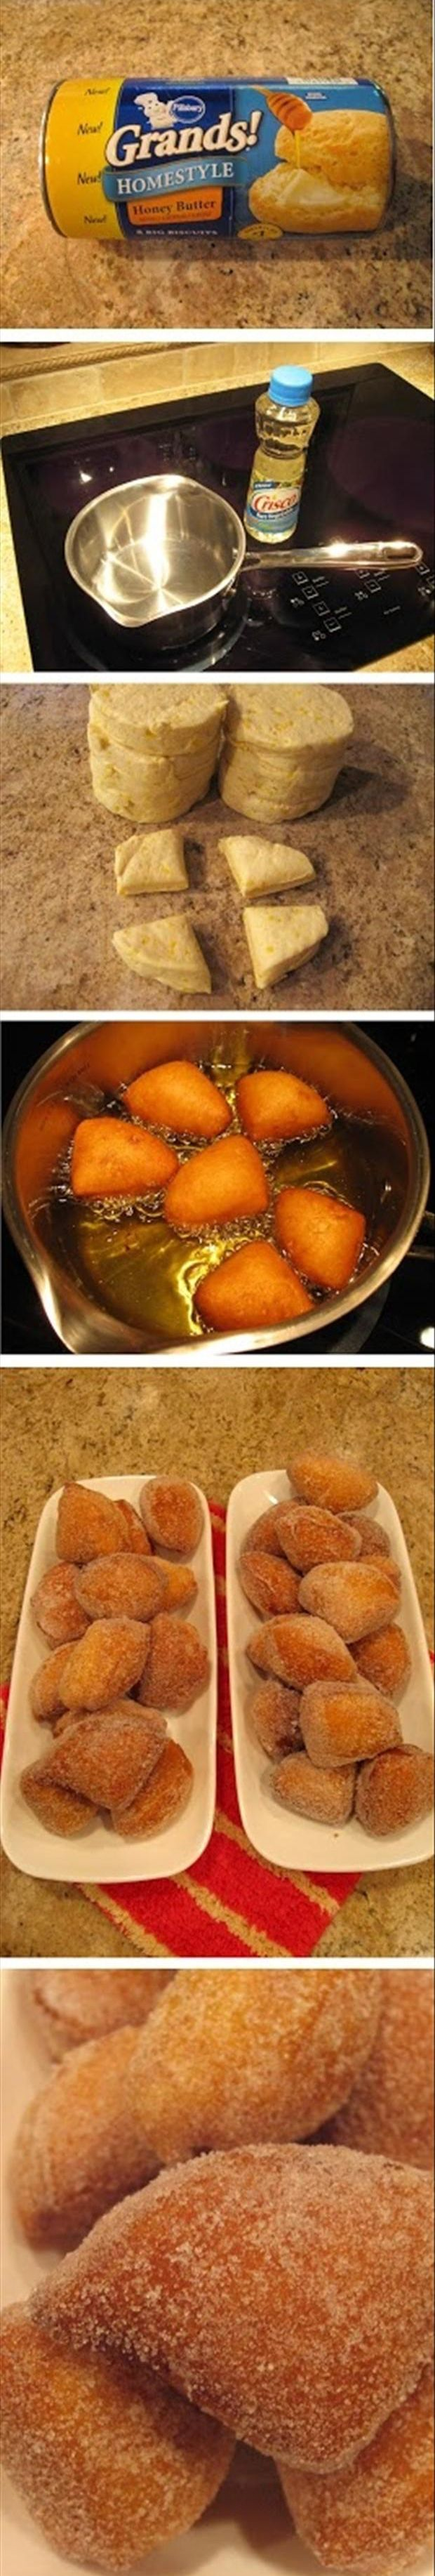 How to make easy donuts!: